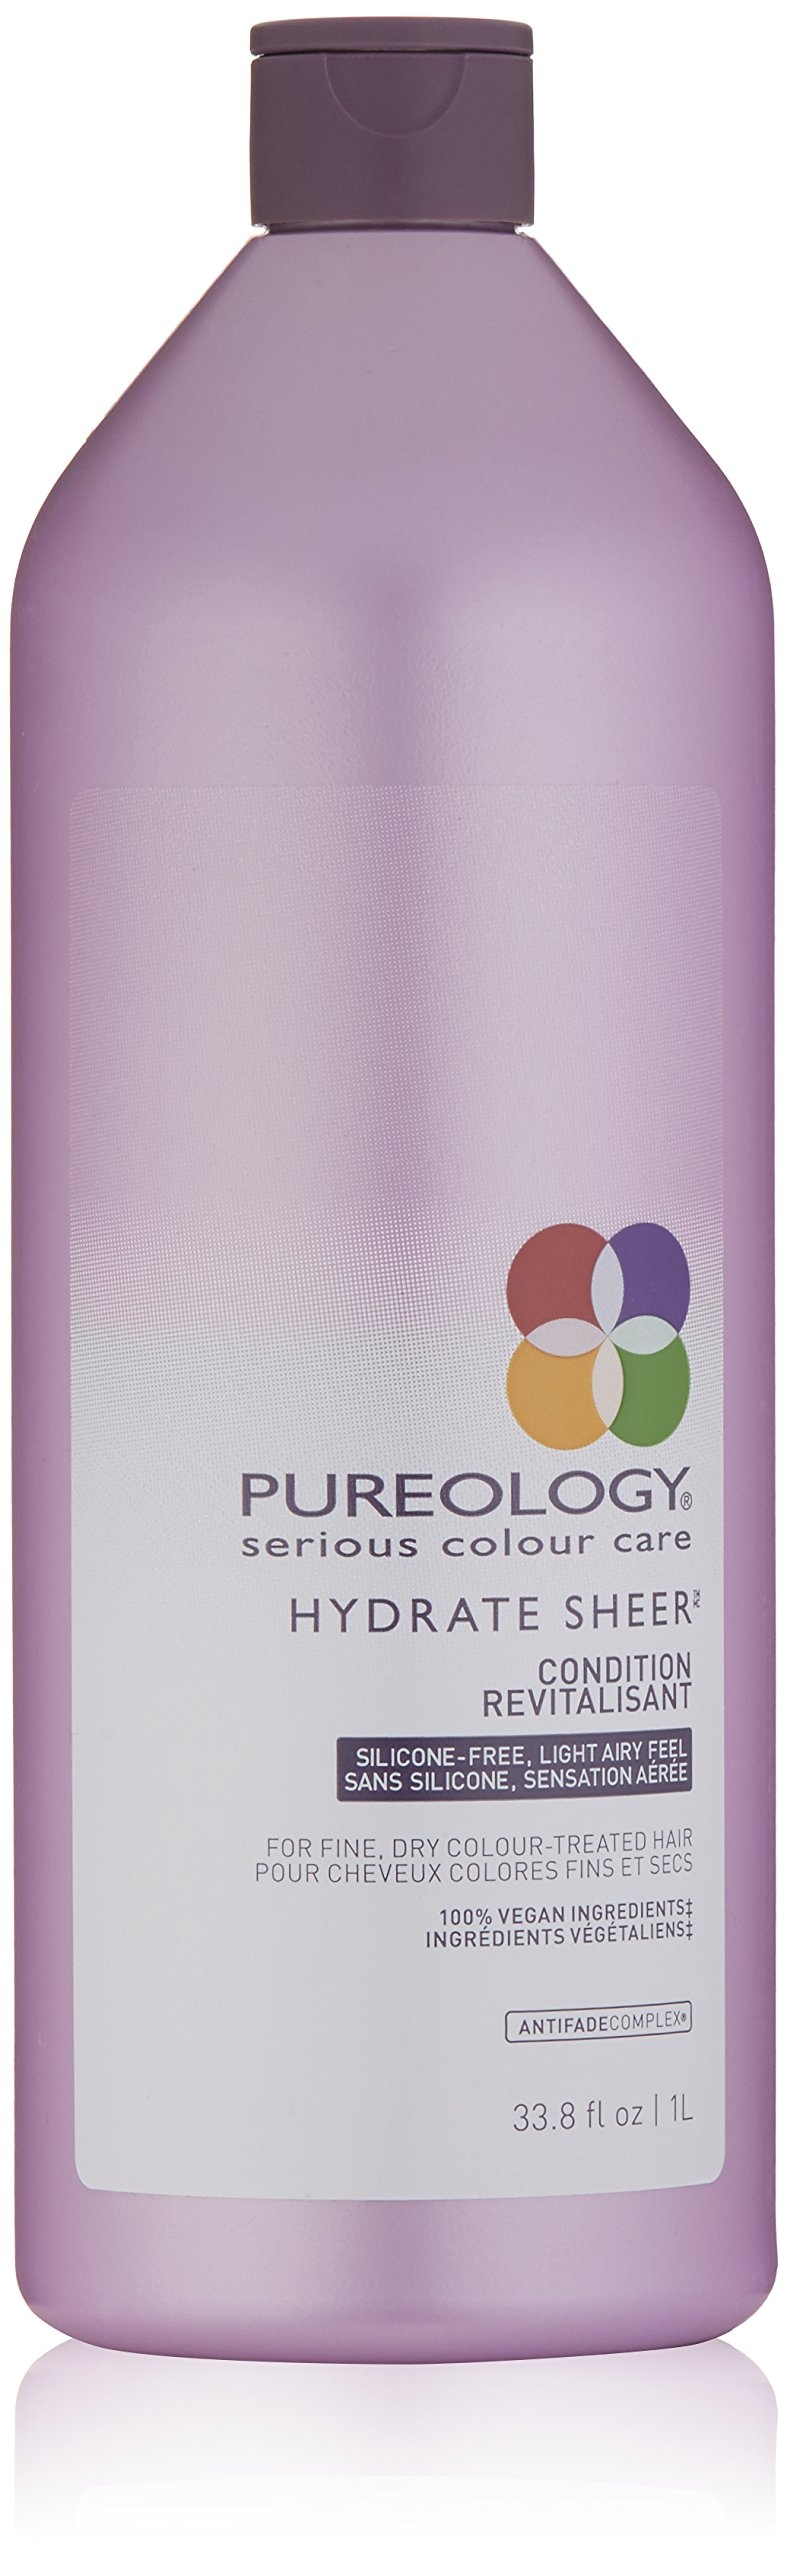 Pureology Hydrate Sheer Conditioner, 33.8 Fl Oz by Pureology (Image #1)